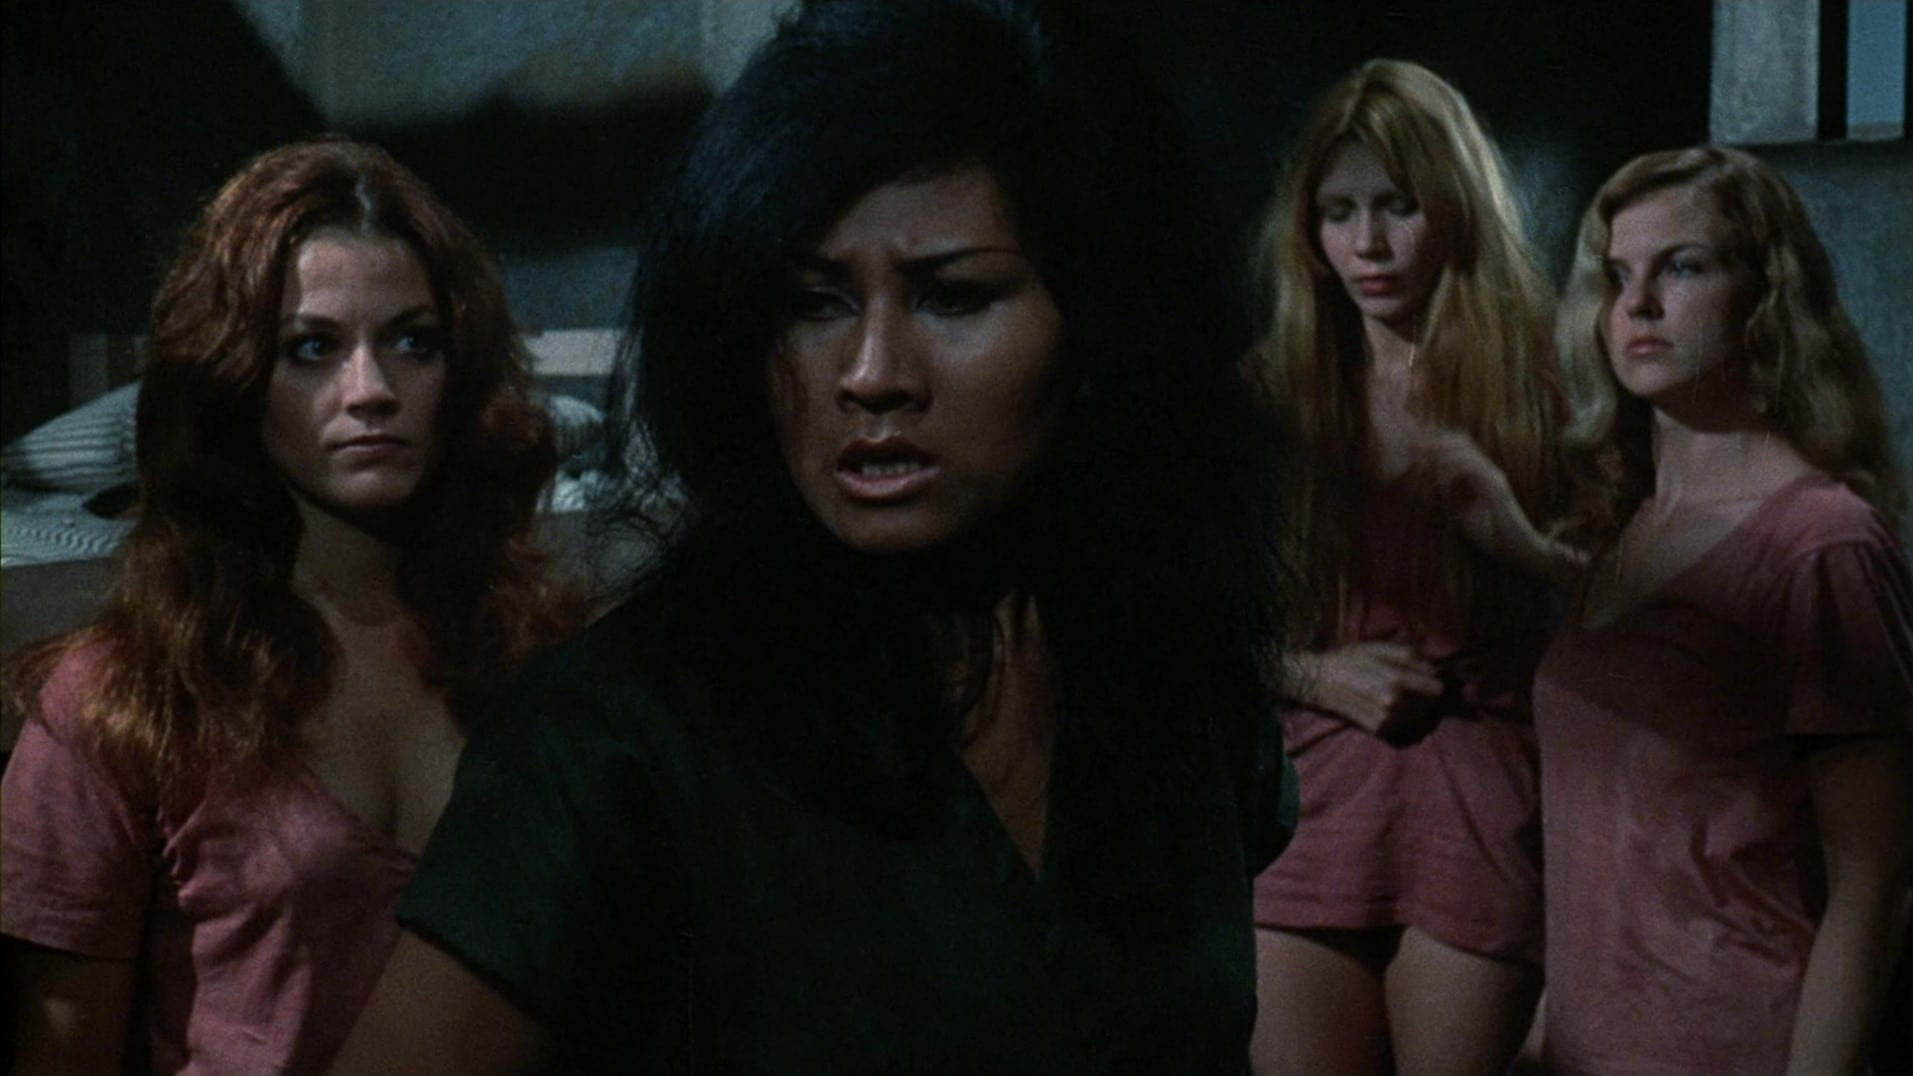 Just Screenshots: Women in Cages (1971)